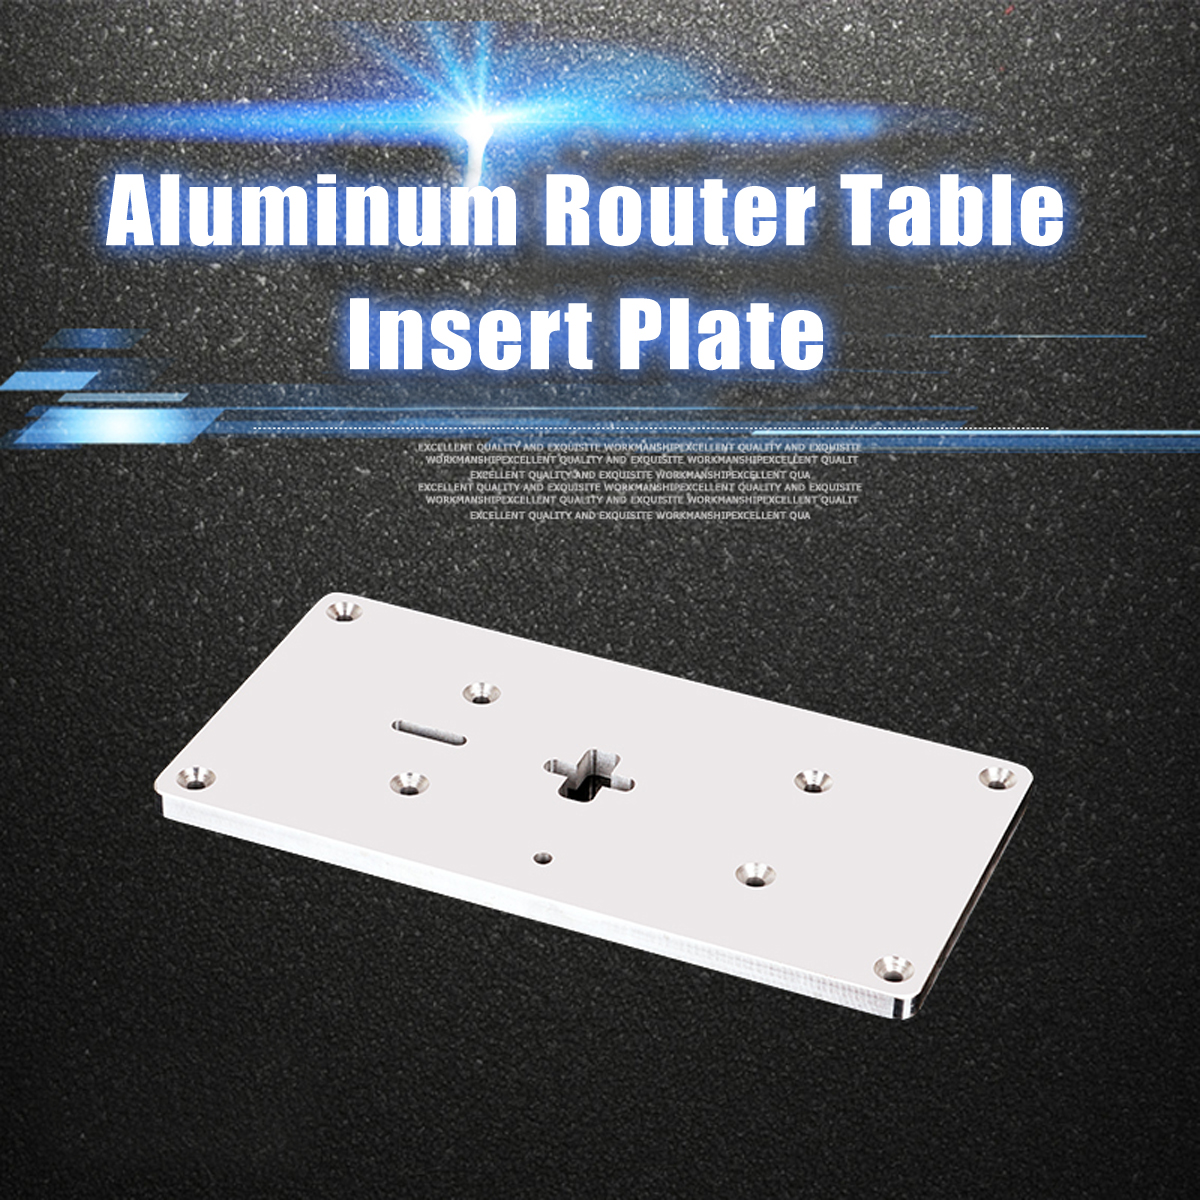 Aluminum router table insert plate with fixing screws for jig saw aluminum router table insert plate with fixing screws for jig saw woodworking benches in woodworking machinery parts from tools on aliexpress alibaba greentooth Gallery